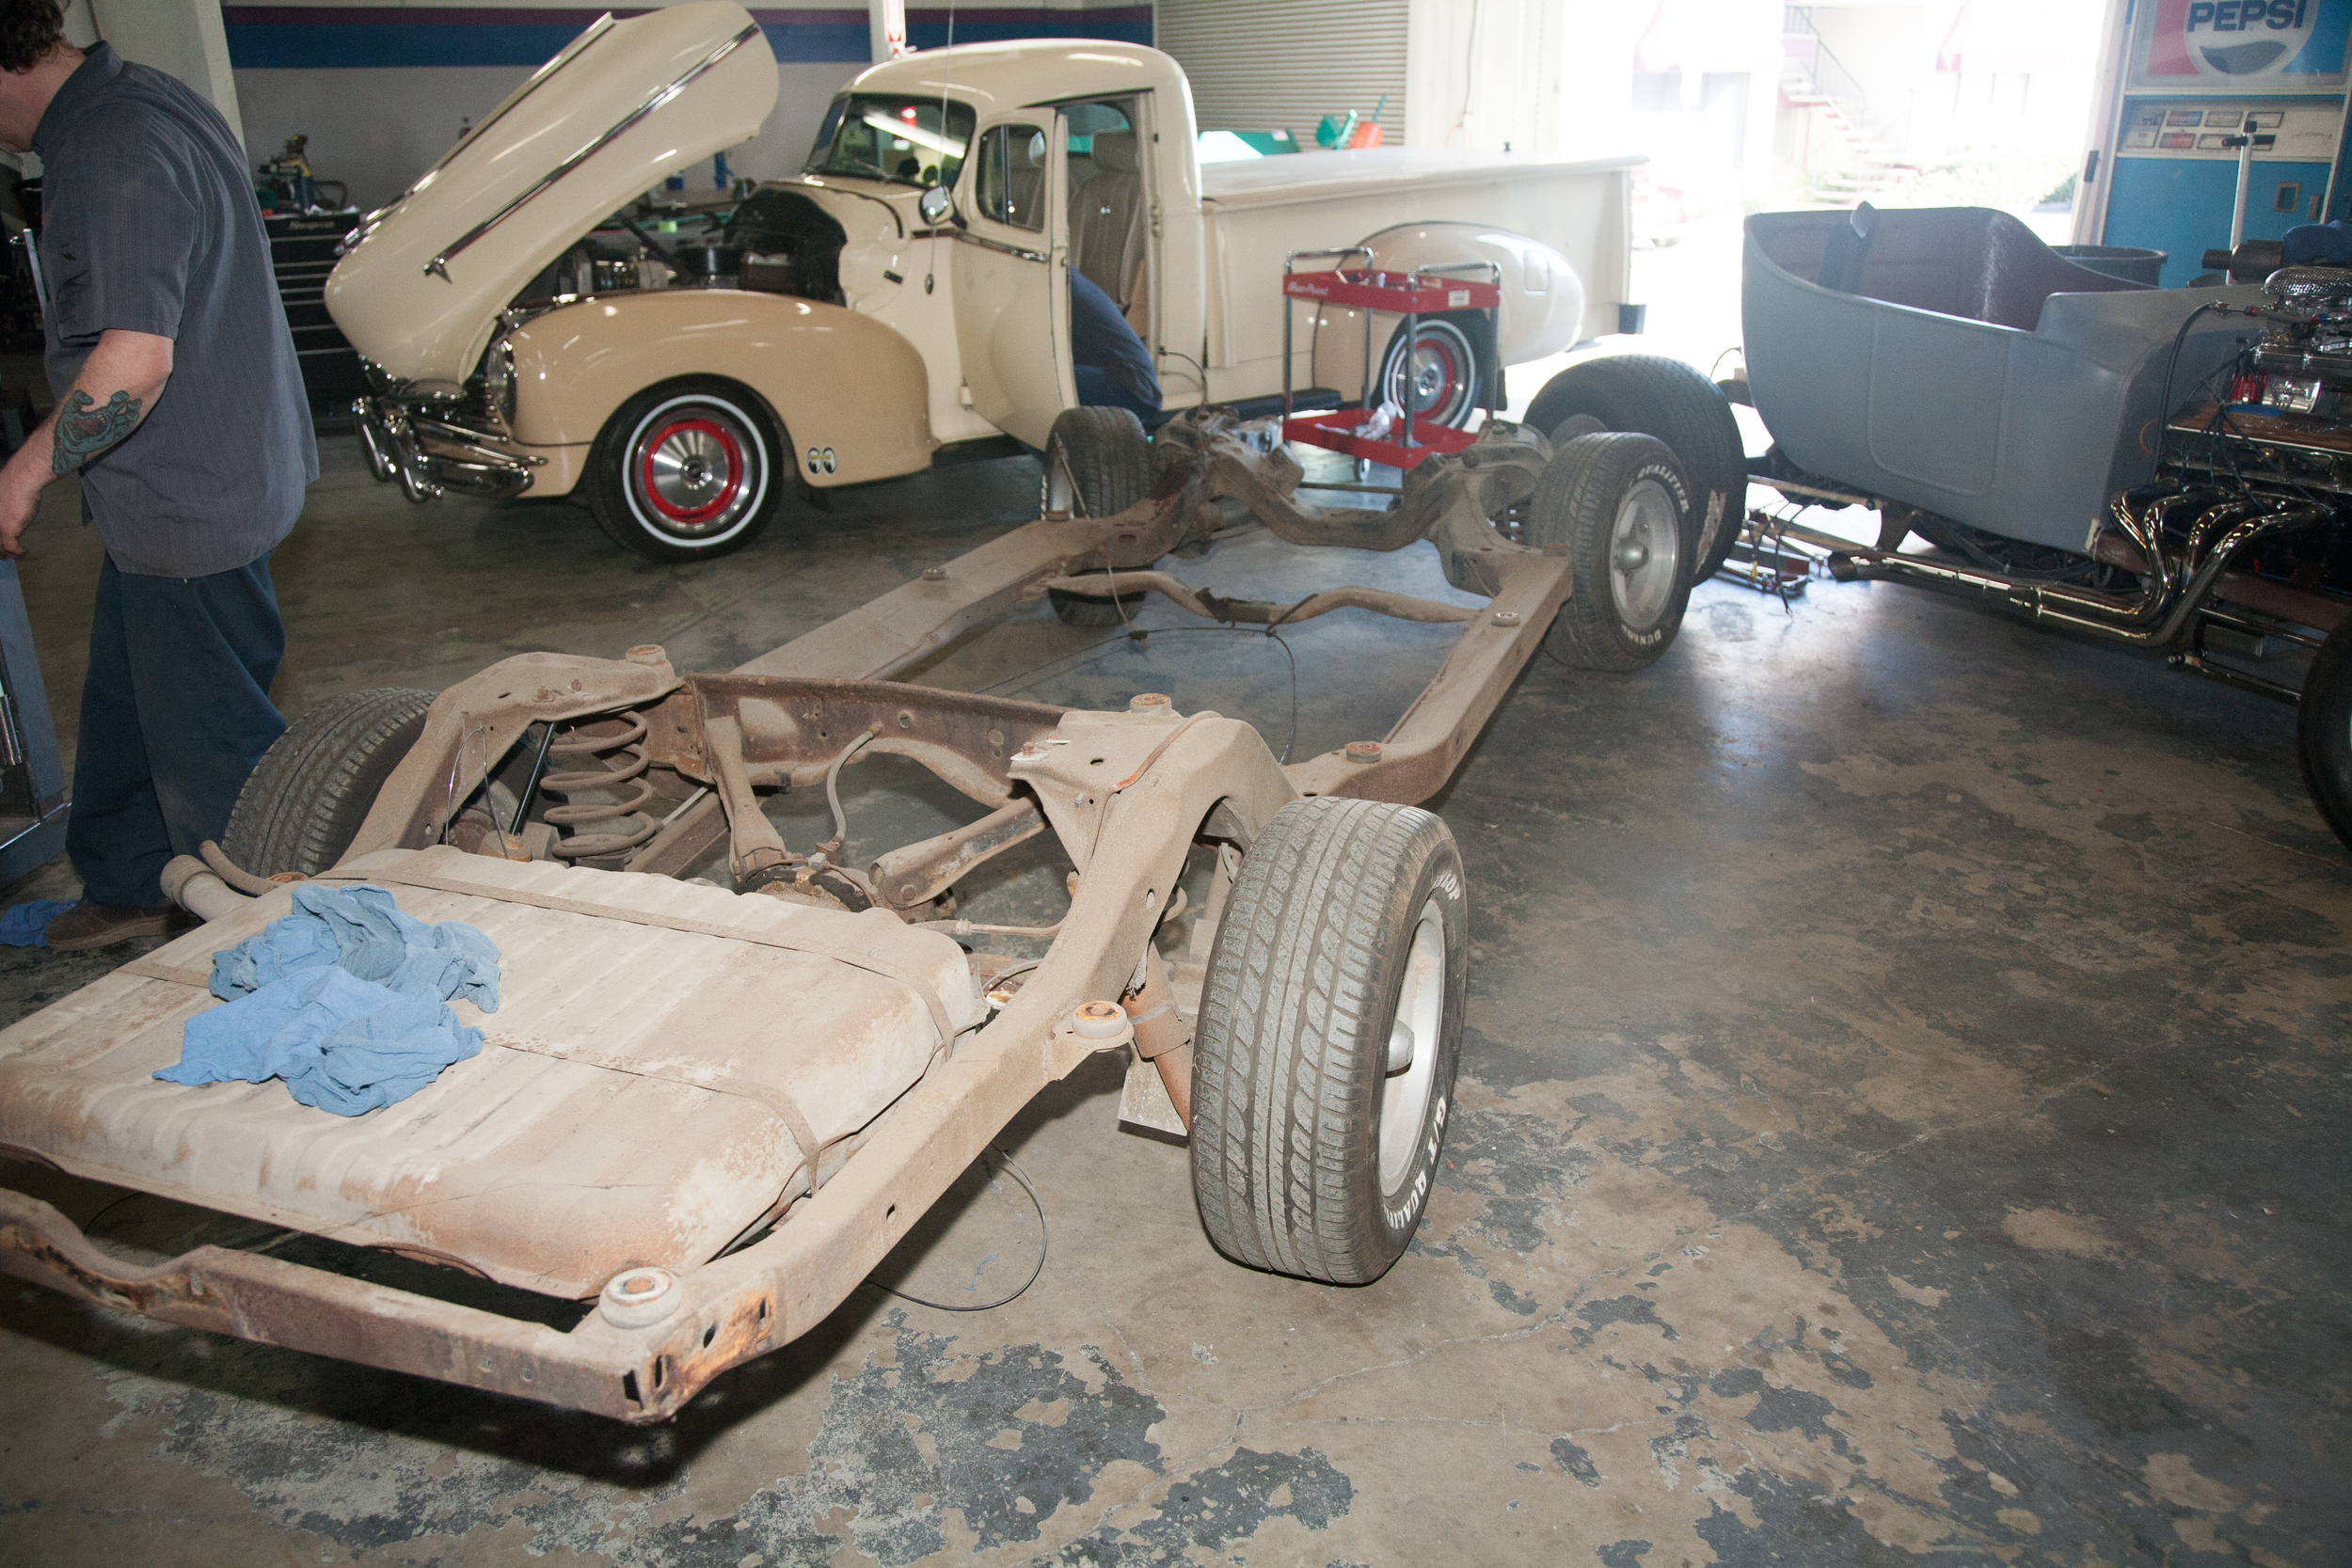 The chassis is rolled away to be taken apart, inspected for any damage and sentout to be sandblasted and powdercoated.